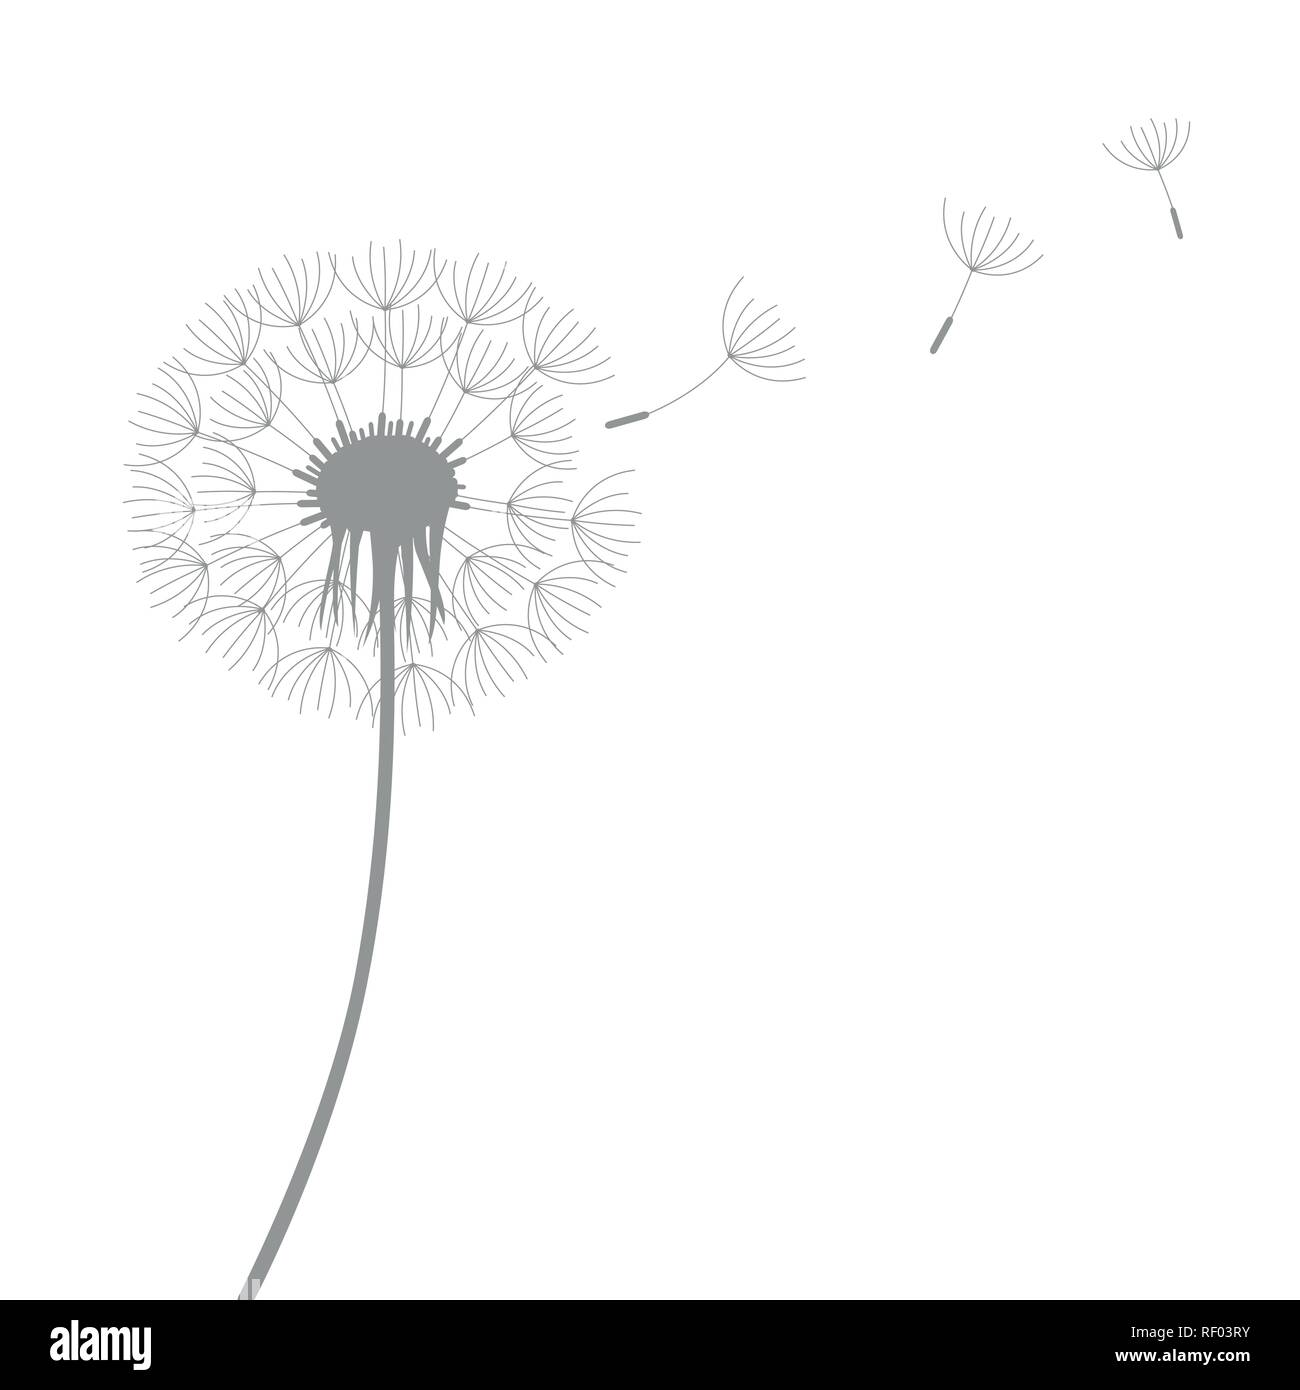 dandelion silhouette with flying seeds isolated on white background vector illustration EPS10 - Stock Vector